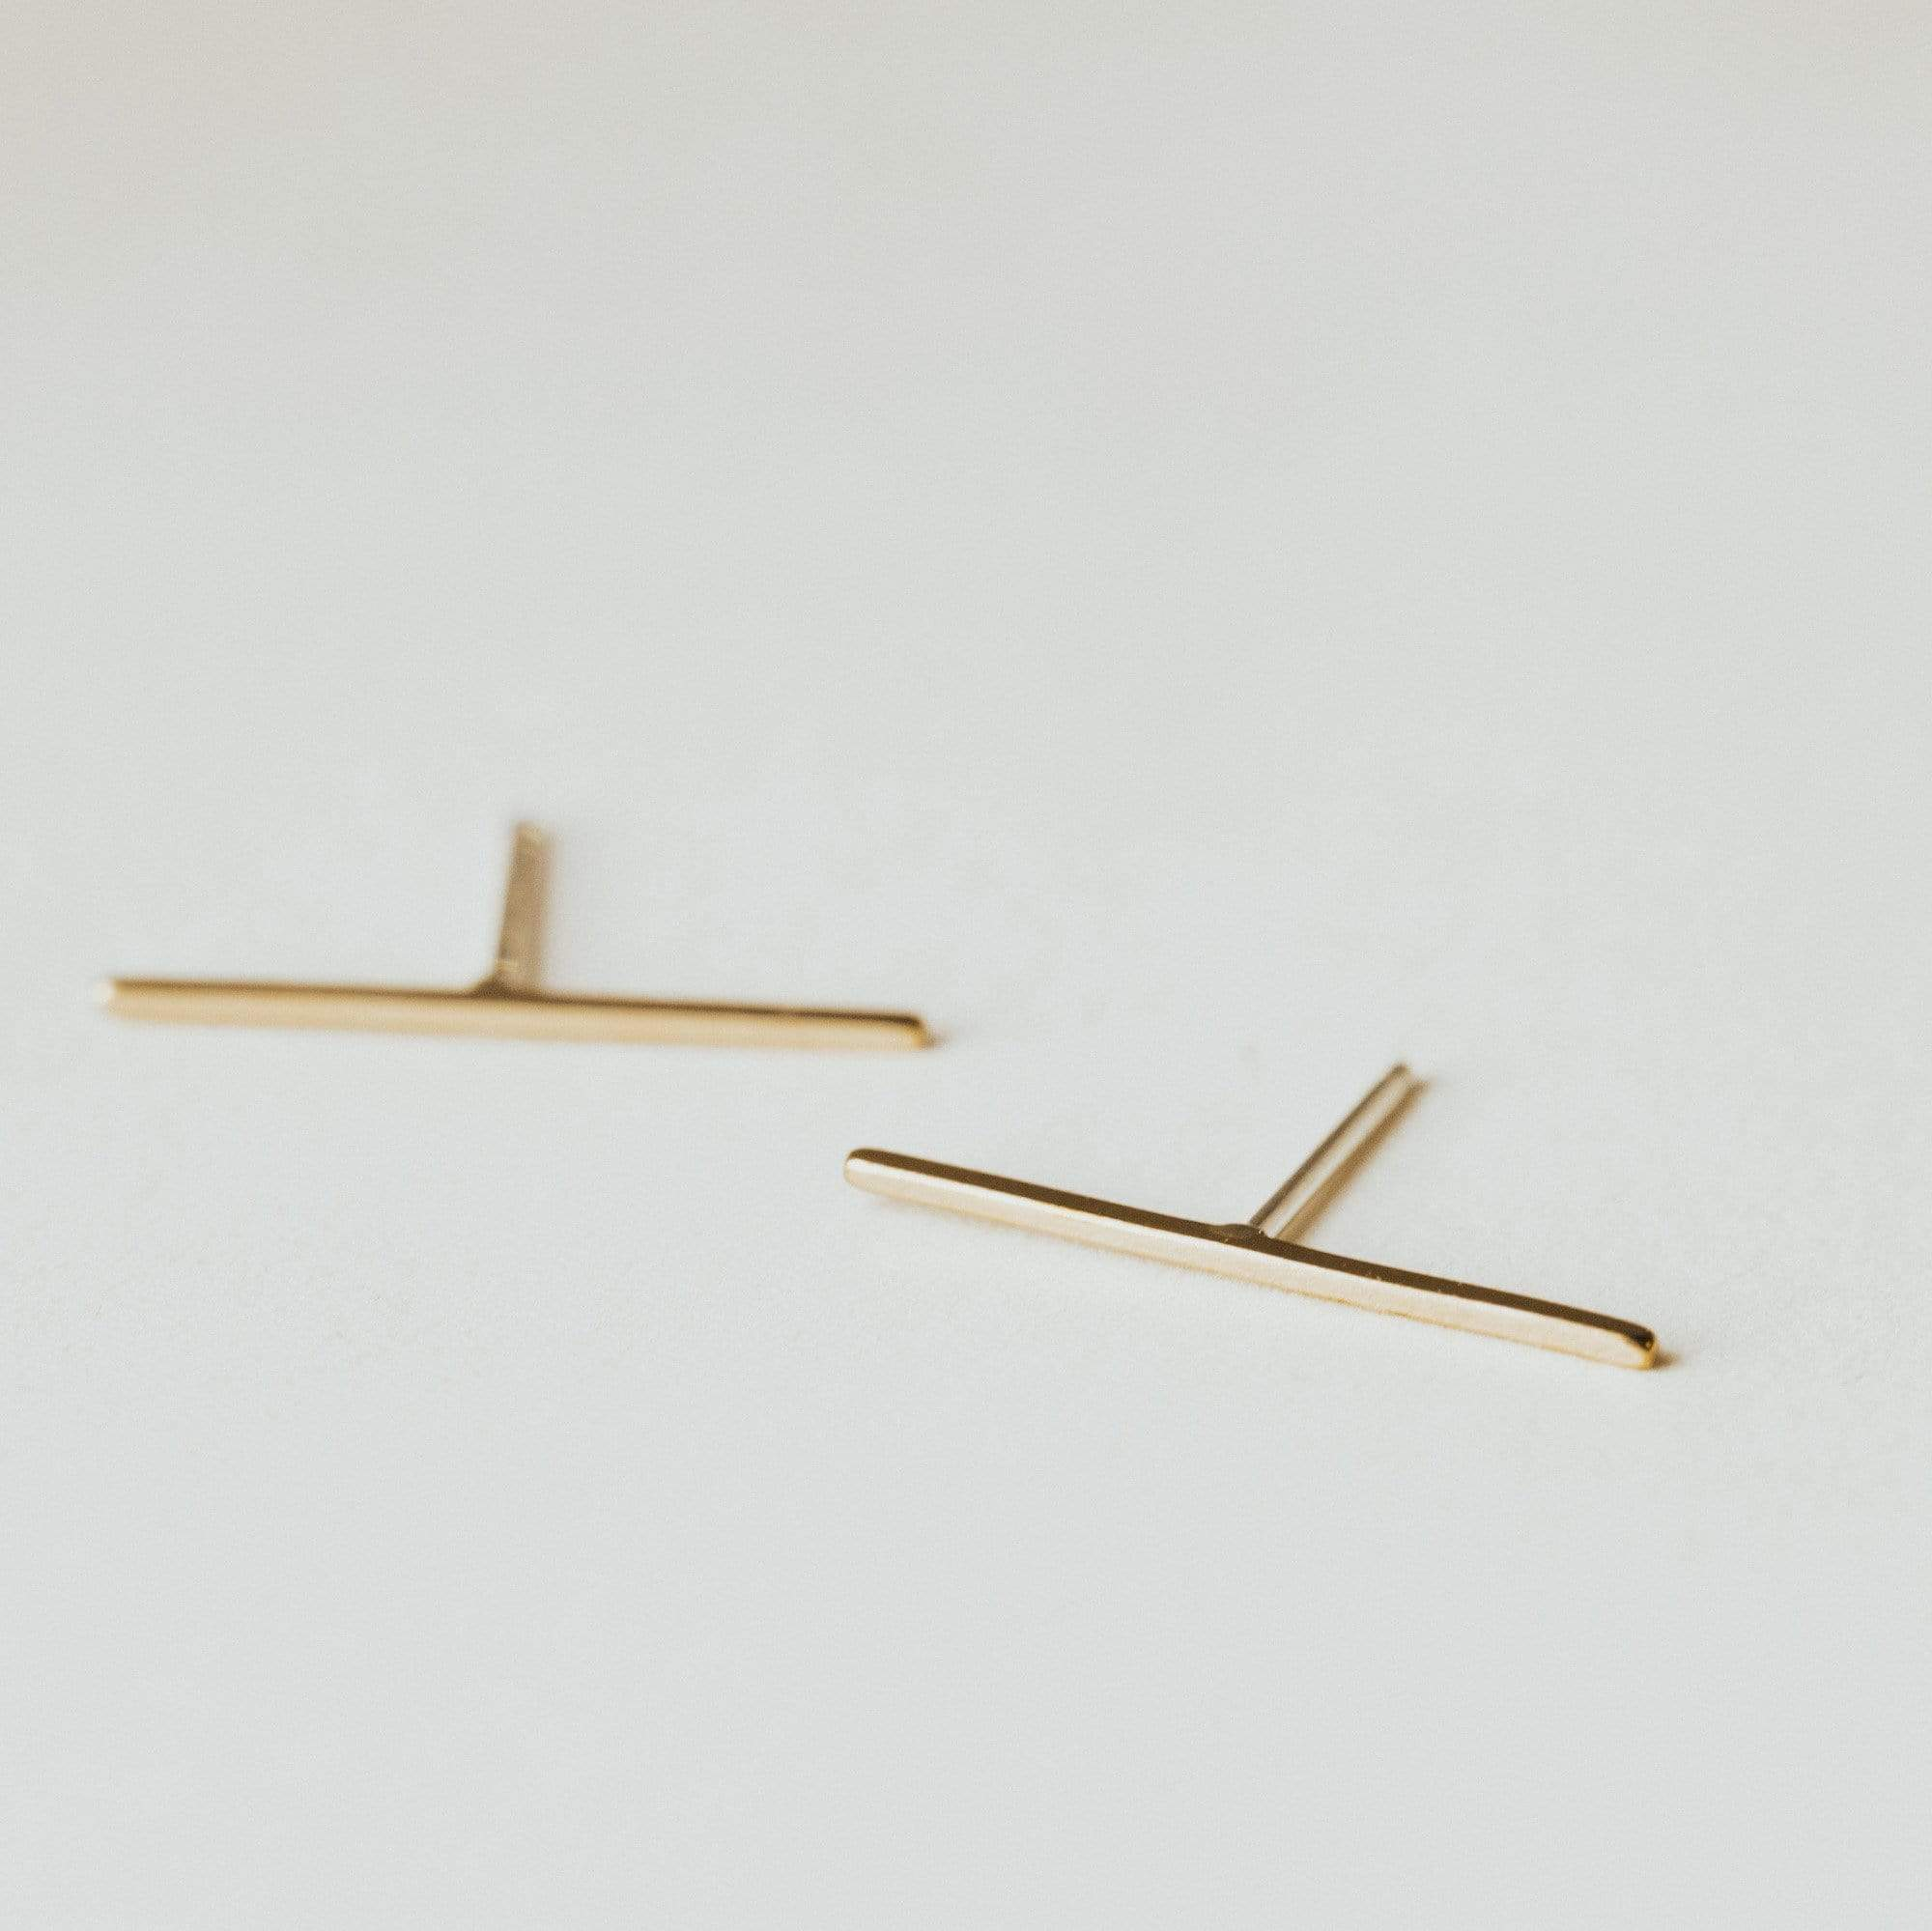 OXBStudio Earrings Gold Filled Bar Studs, XL